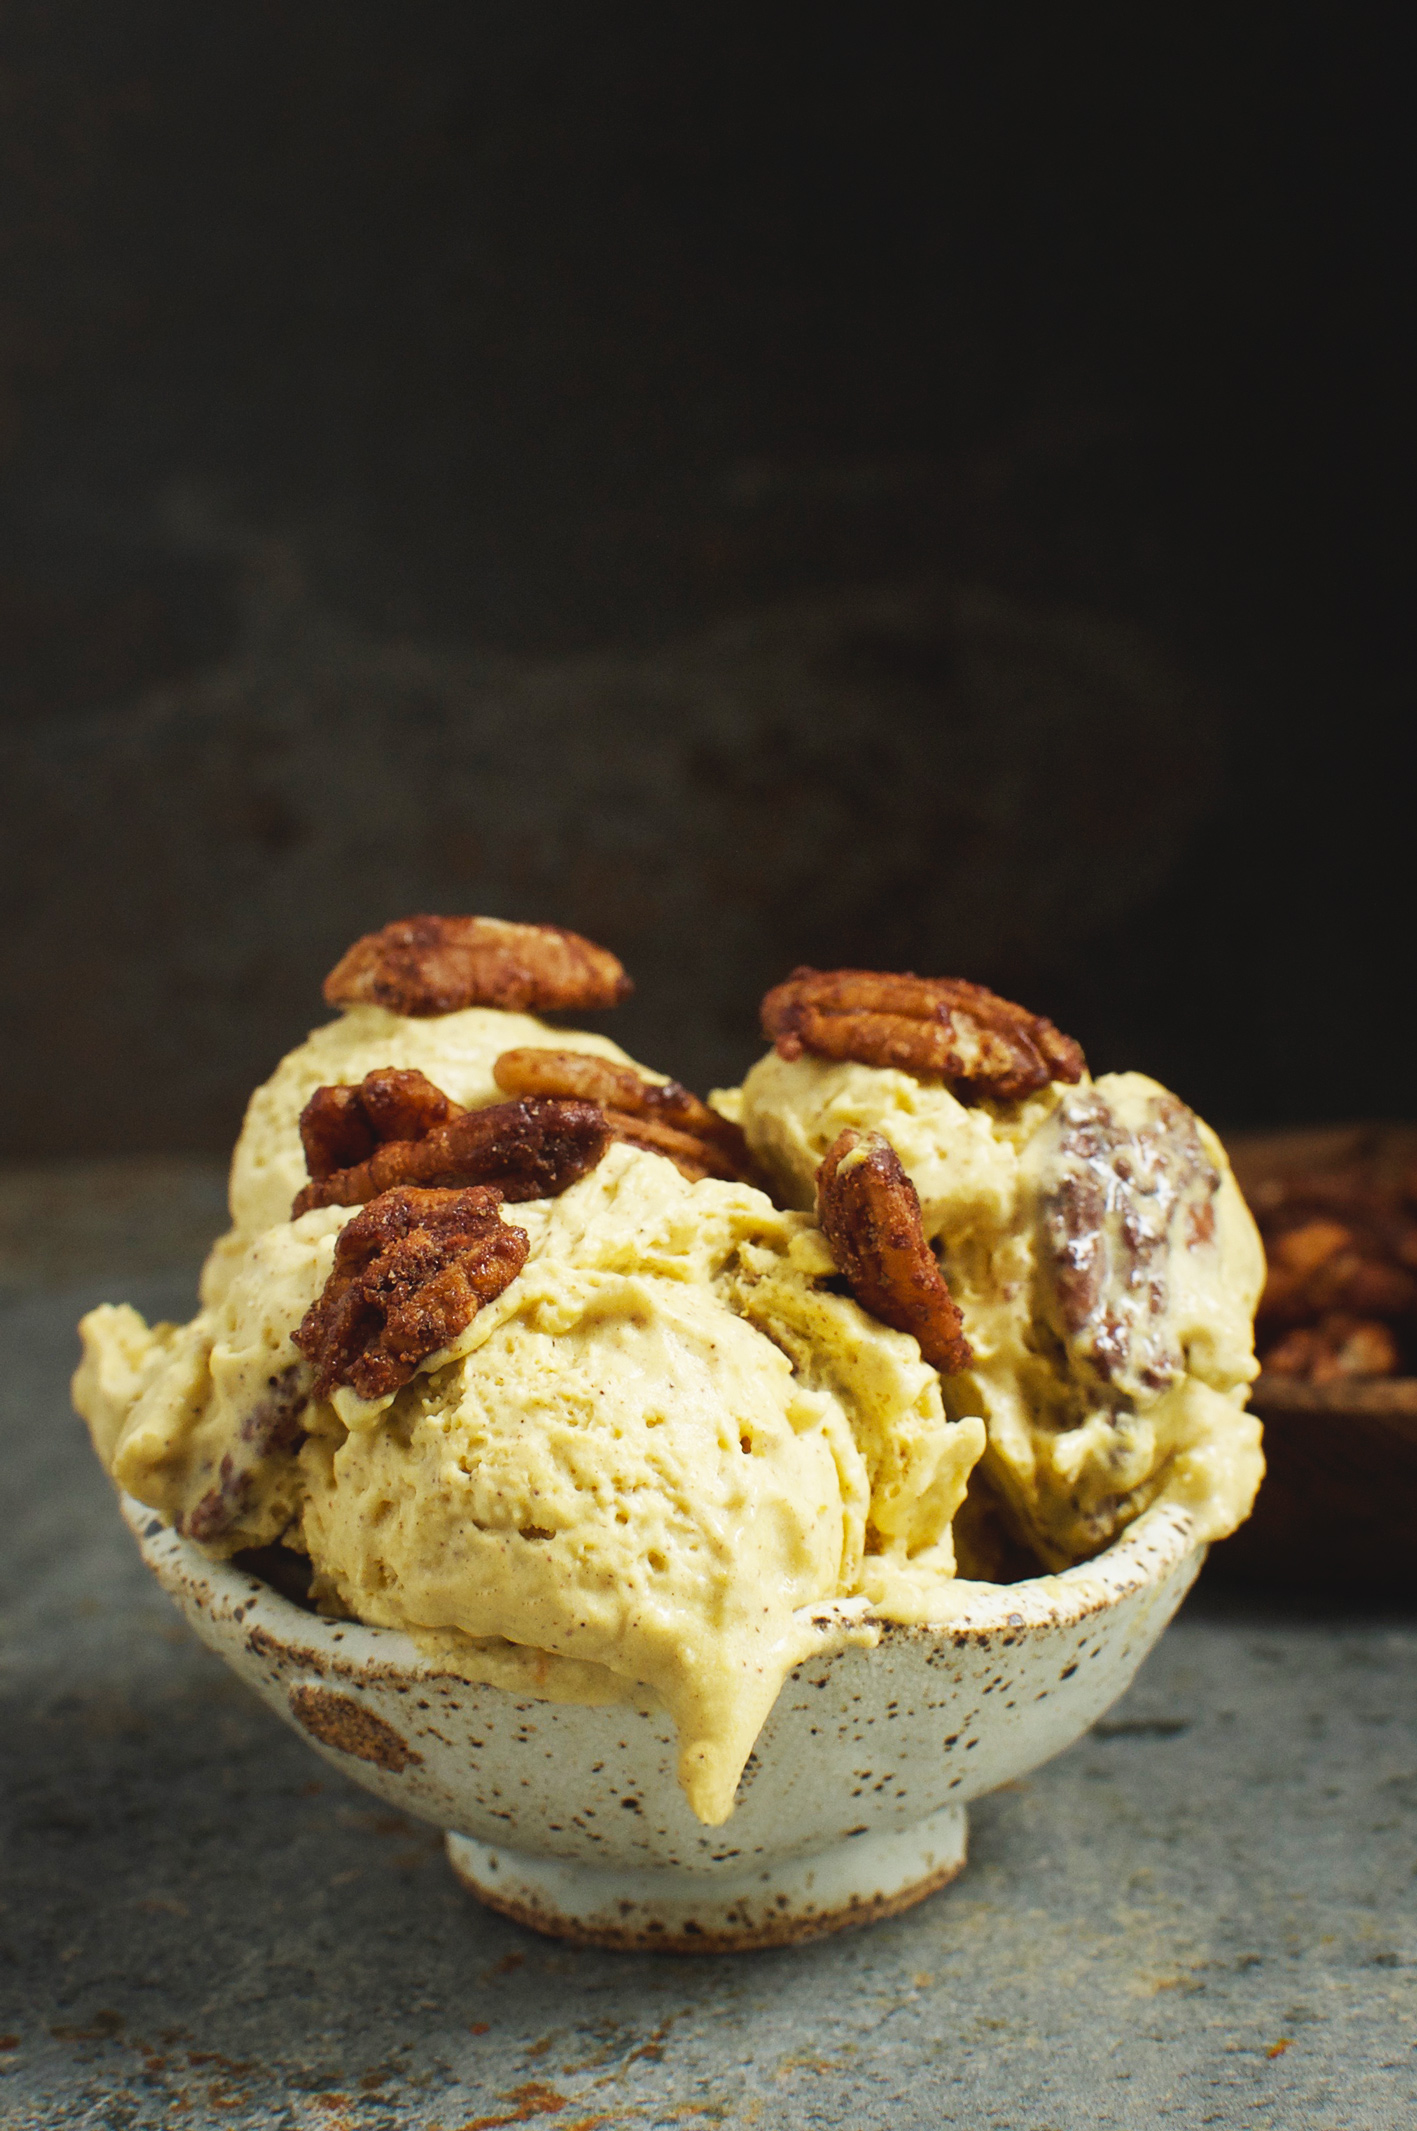 This Low-Carb Candied Pecan Pumpkin Ice-Cream recipe makes a delicious dessert. This recipe can be part of a low-carb, ketogenic, Atkins, gluten-free, grain-free, diabetic, and Banting diets.